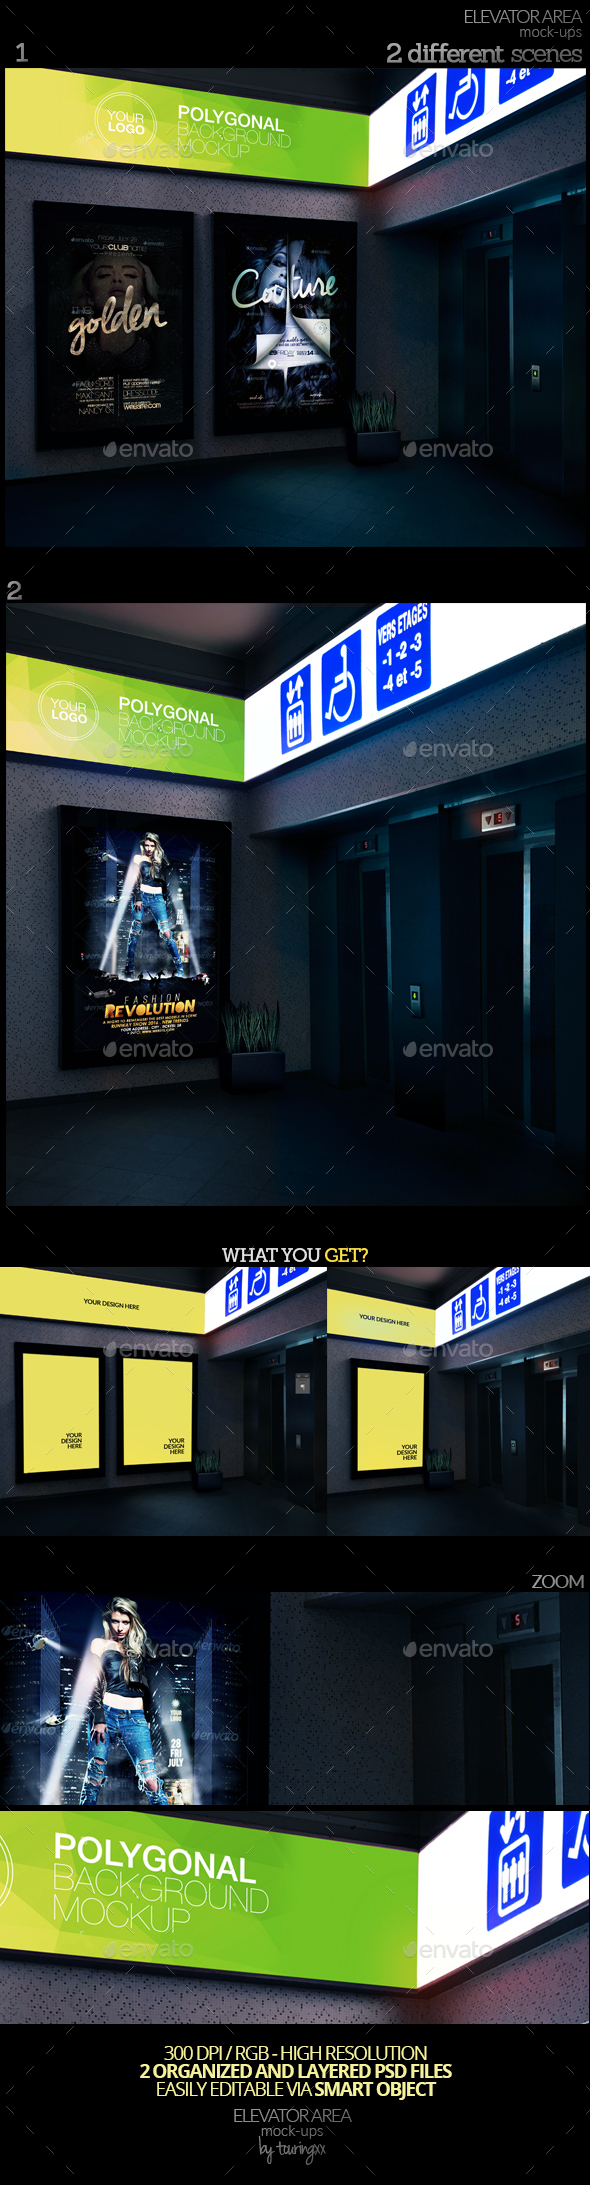 Elevator Area Mock-Ups - Product Mock-Ups Graphics